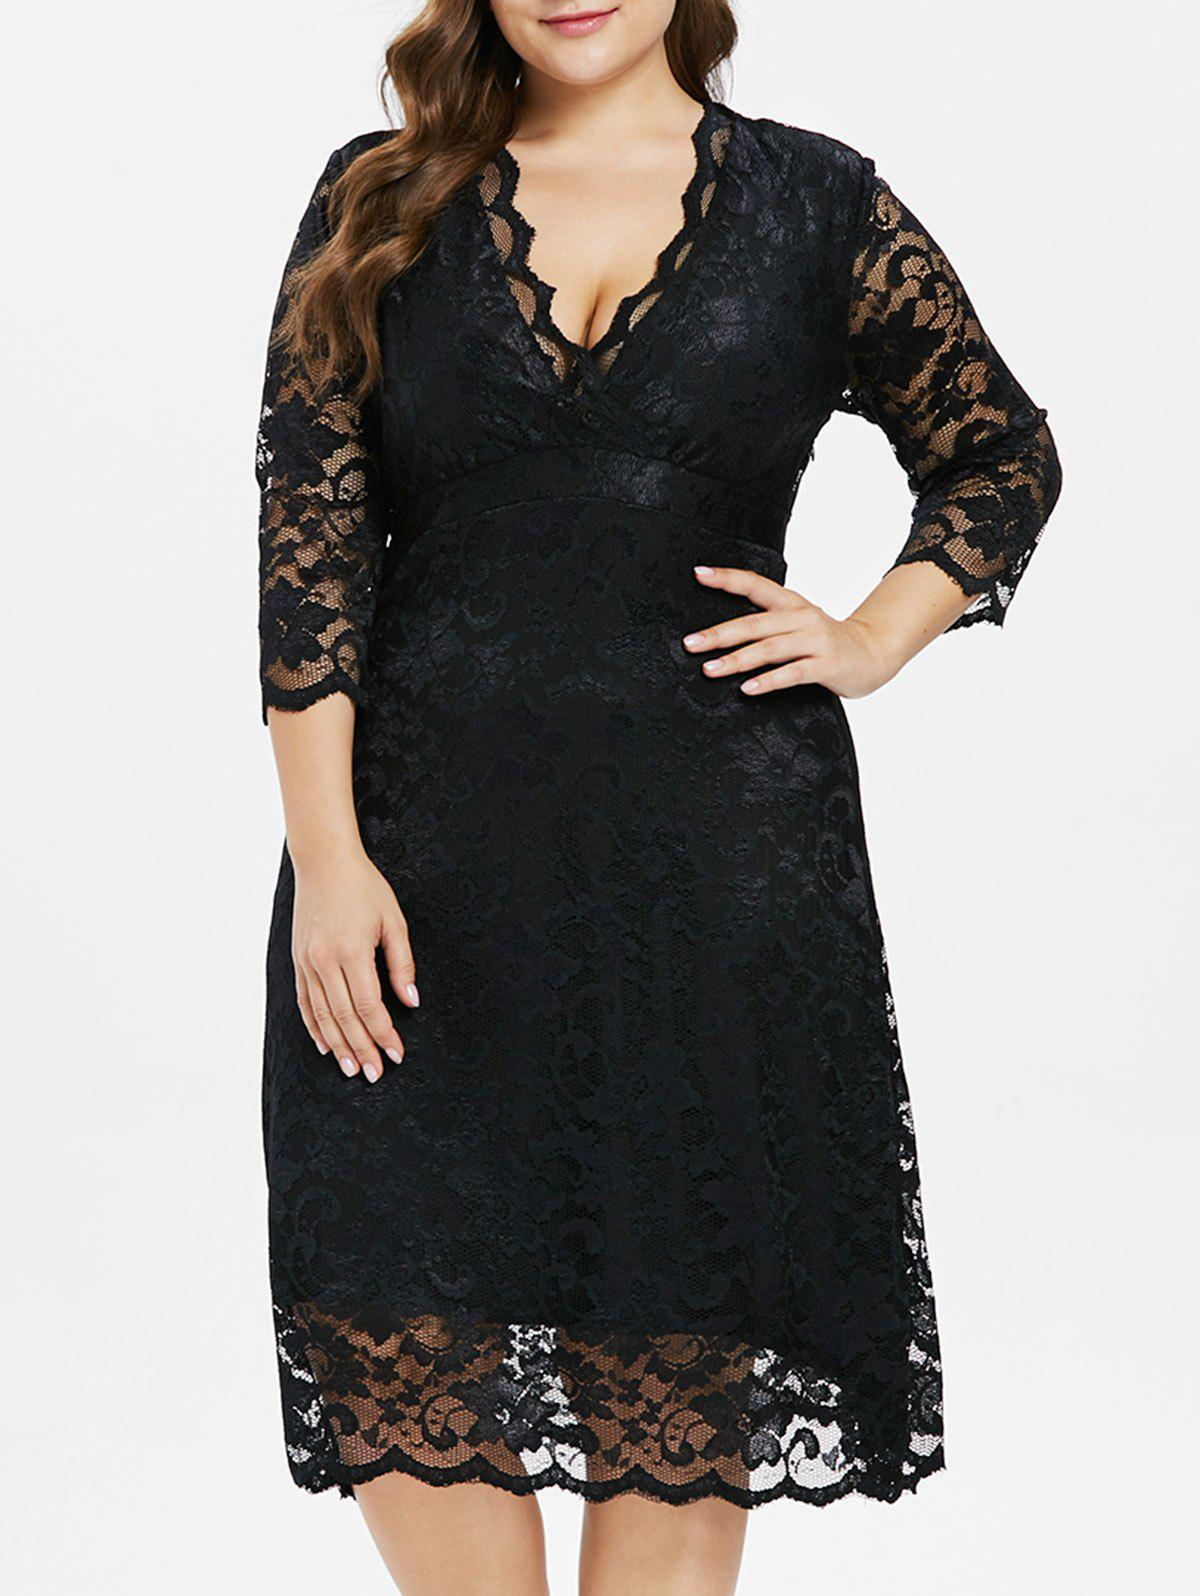 New Plus Size Plunging Neck Lace Dress